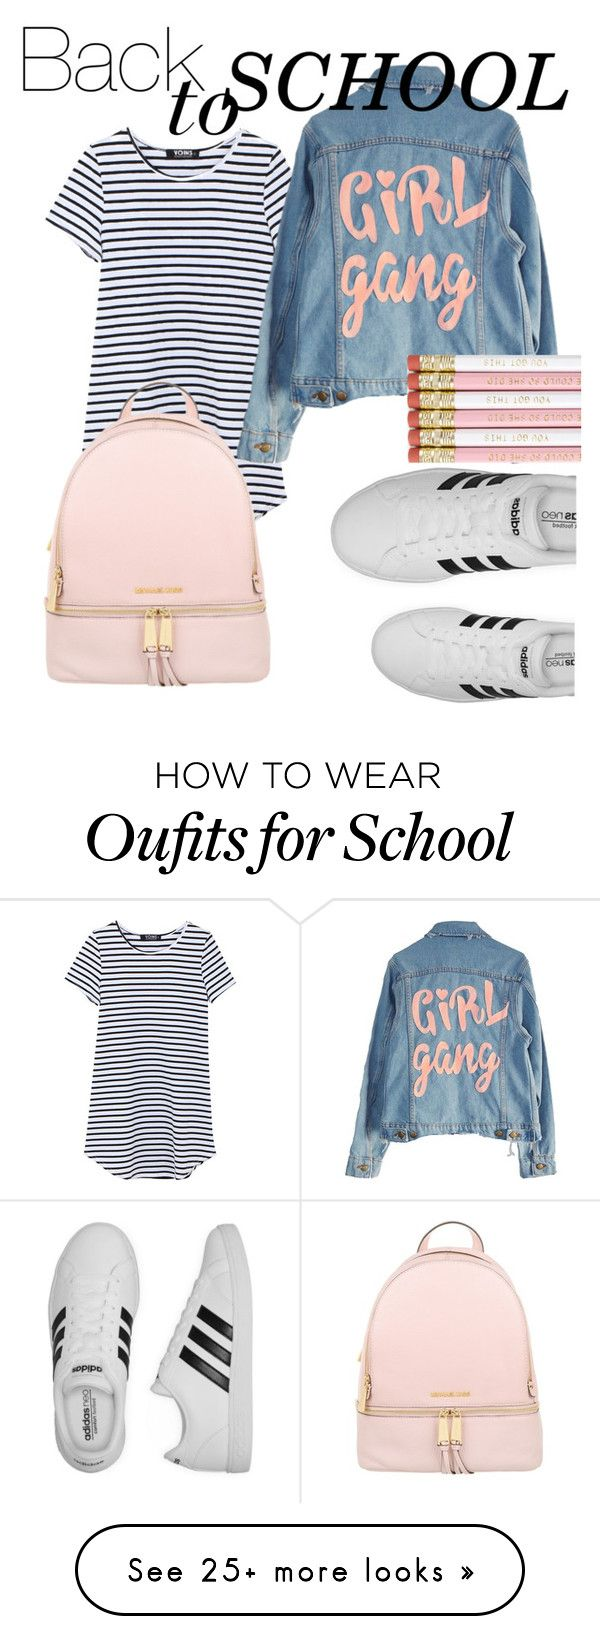 """Back to school."" by sweetlysarita on Polyvore featuring High Heels Suicide, adidas and Michael Kors"